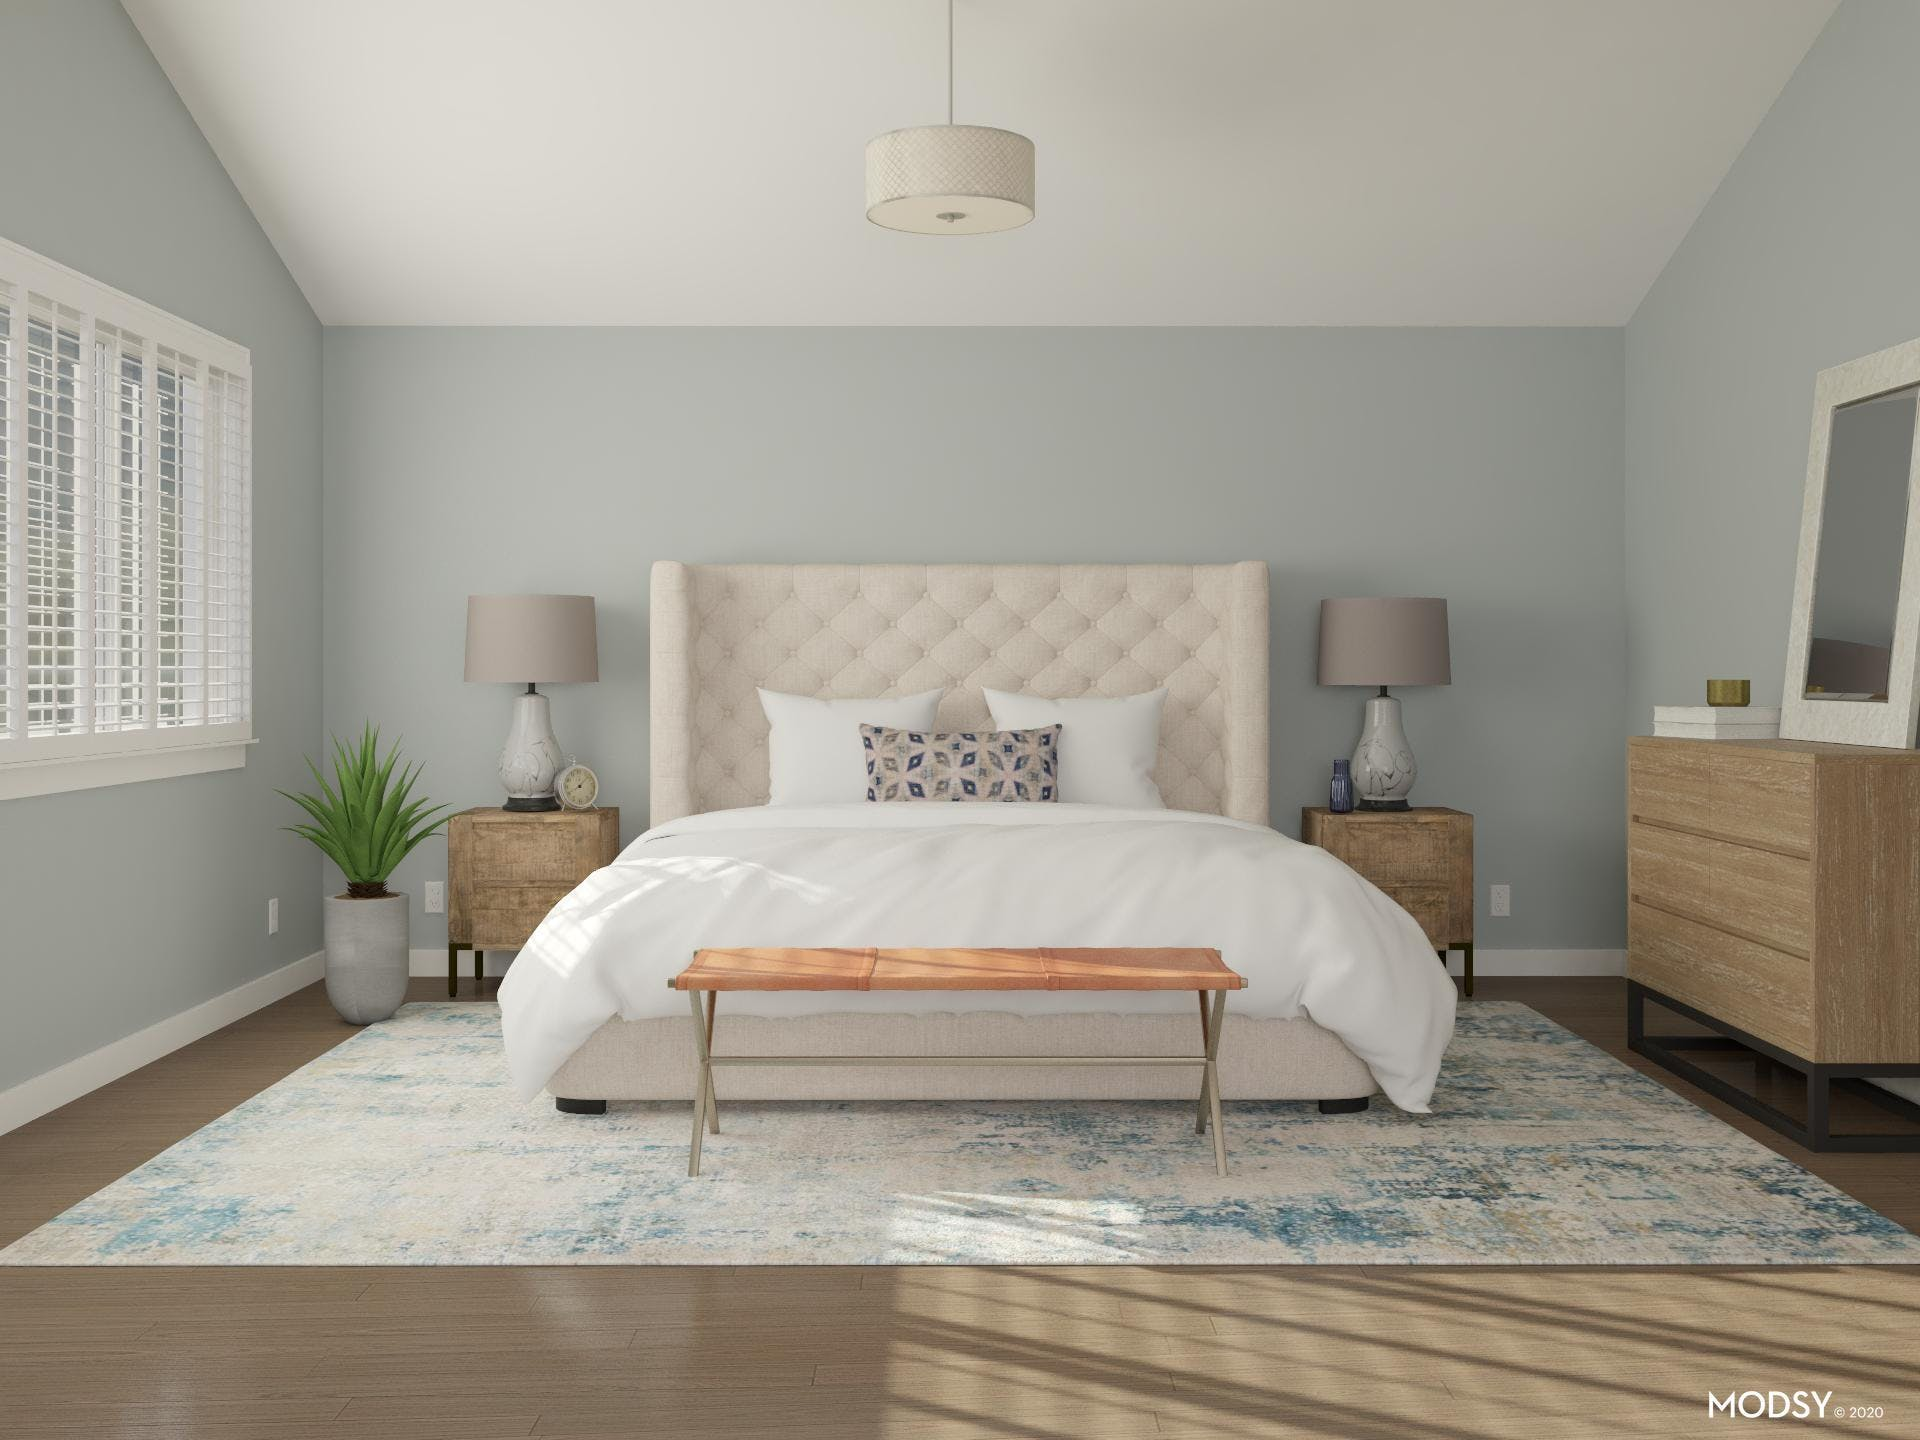 Minimal and Contemporary Bedroom in Breezy Blue